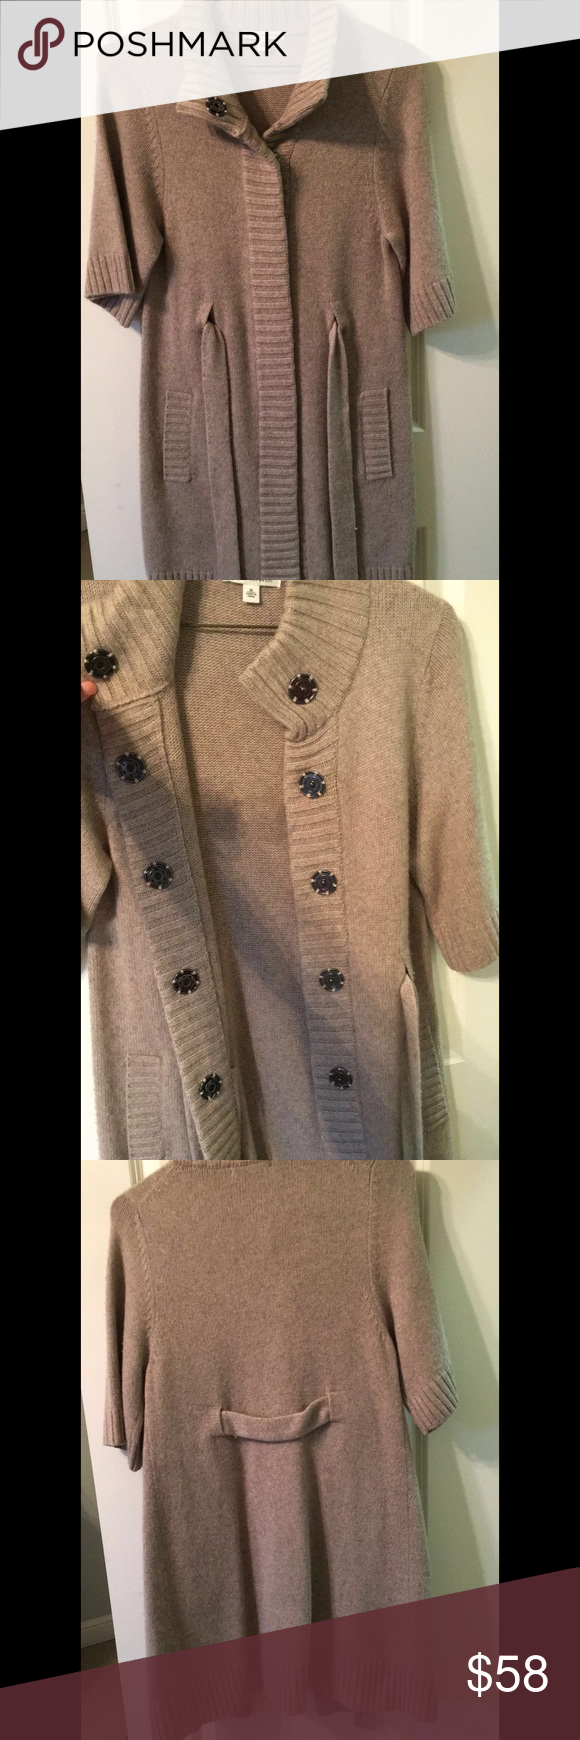 NWOT light brown button down sweater | D, Banana republic and Buttons